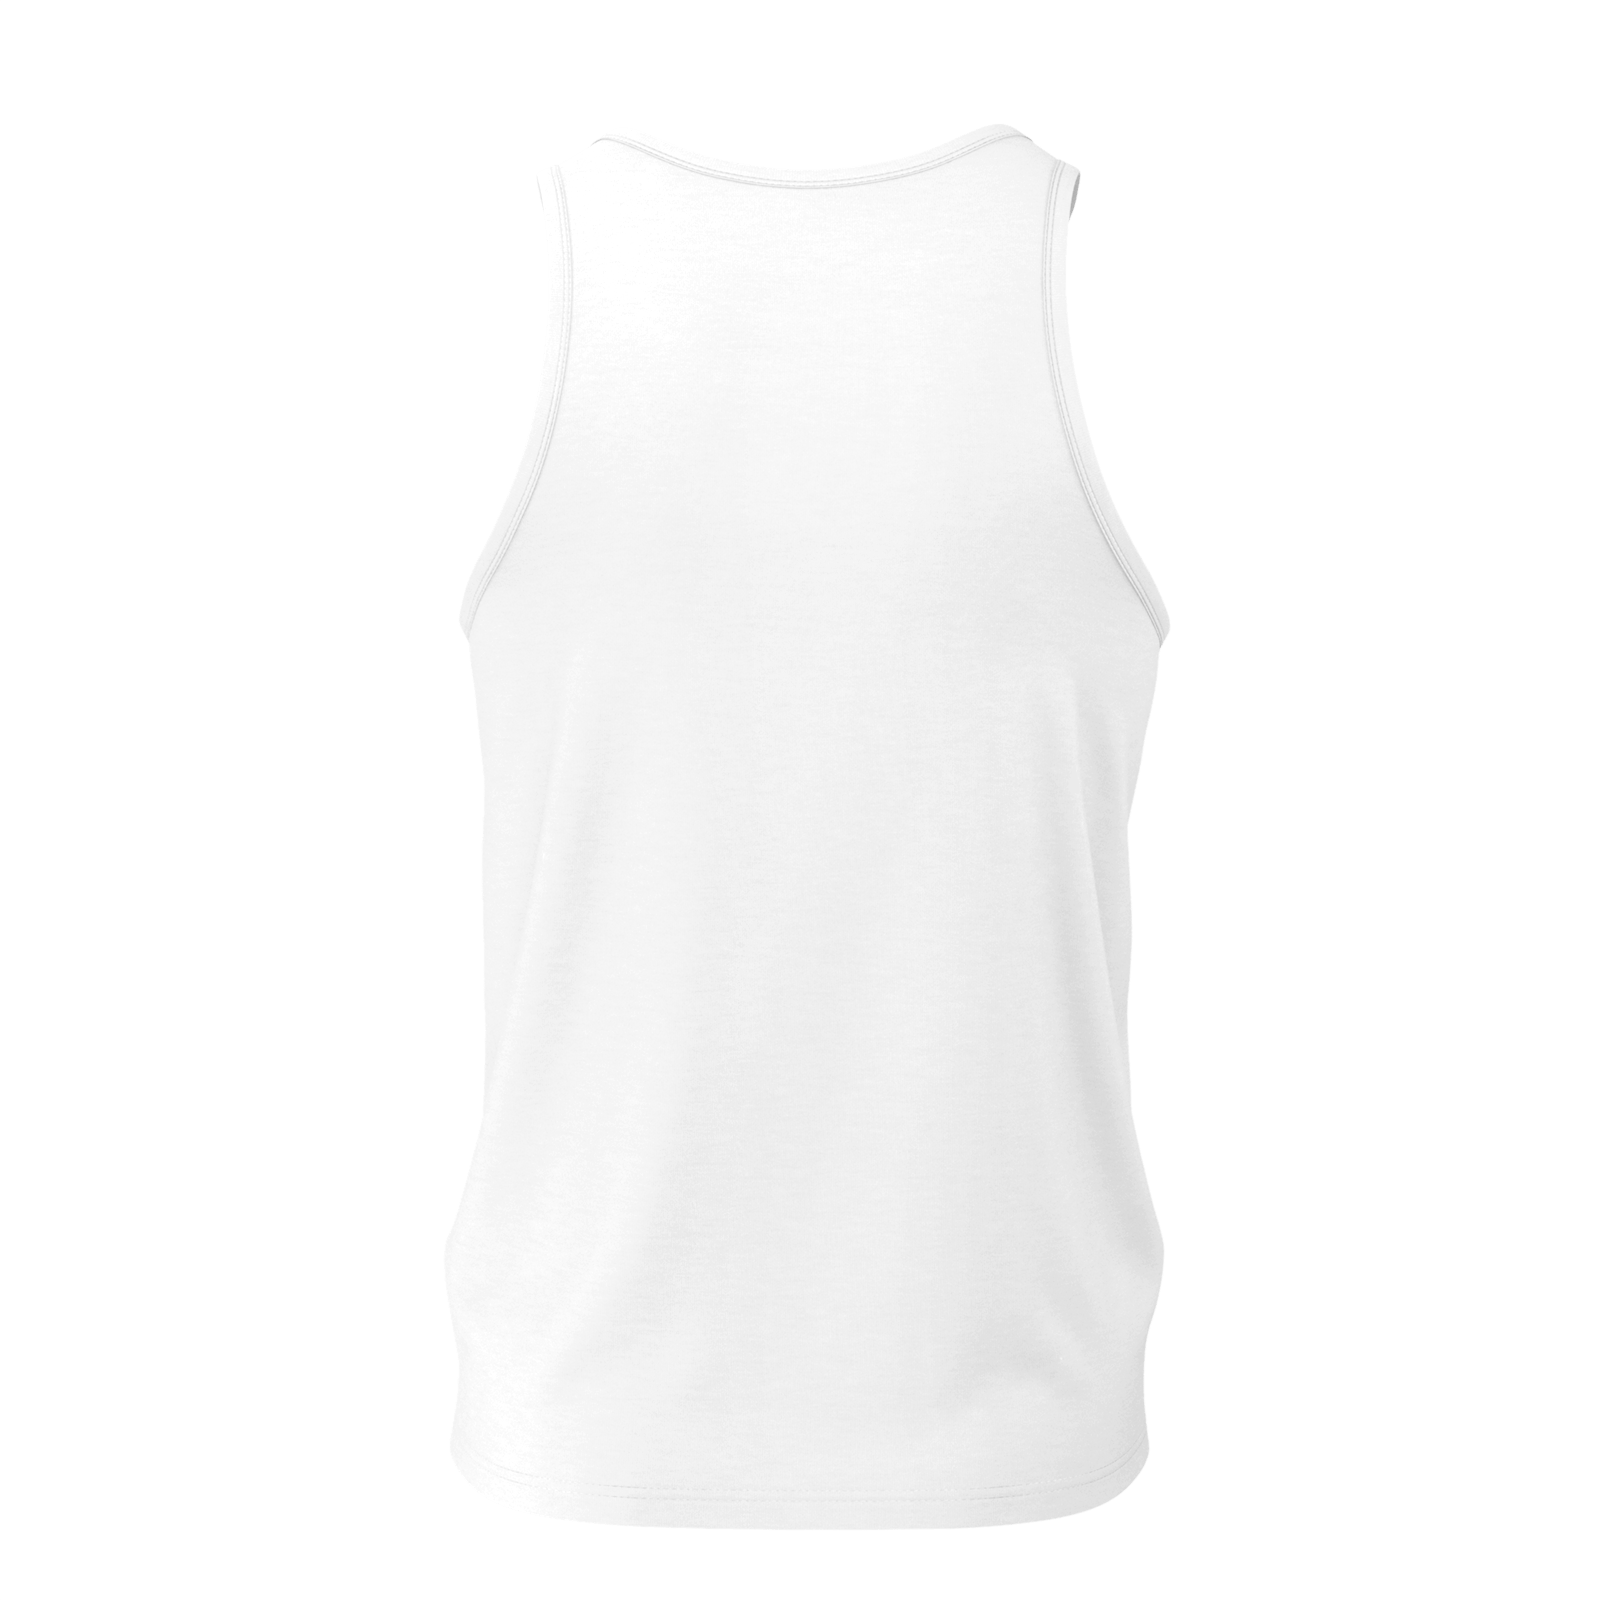 S71 Pride Tank Top White